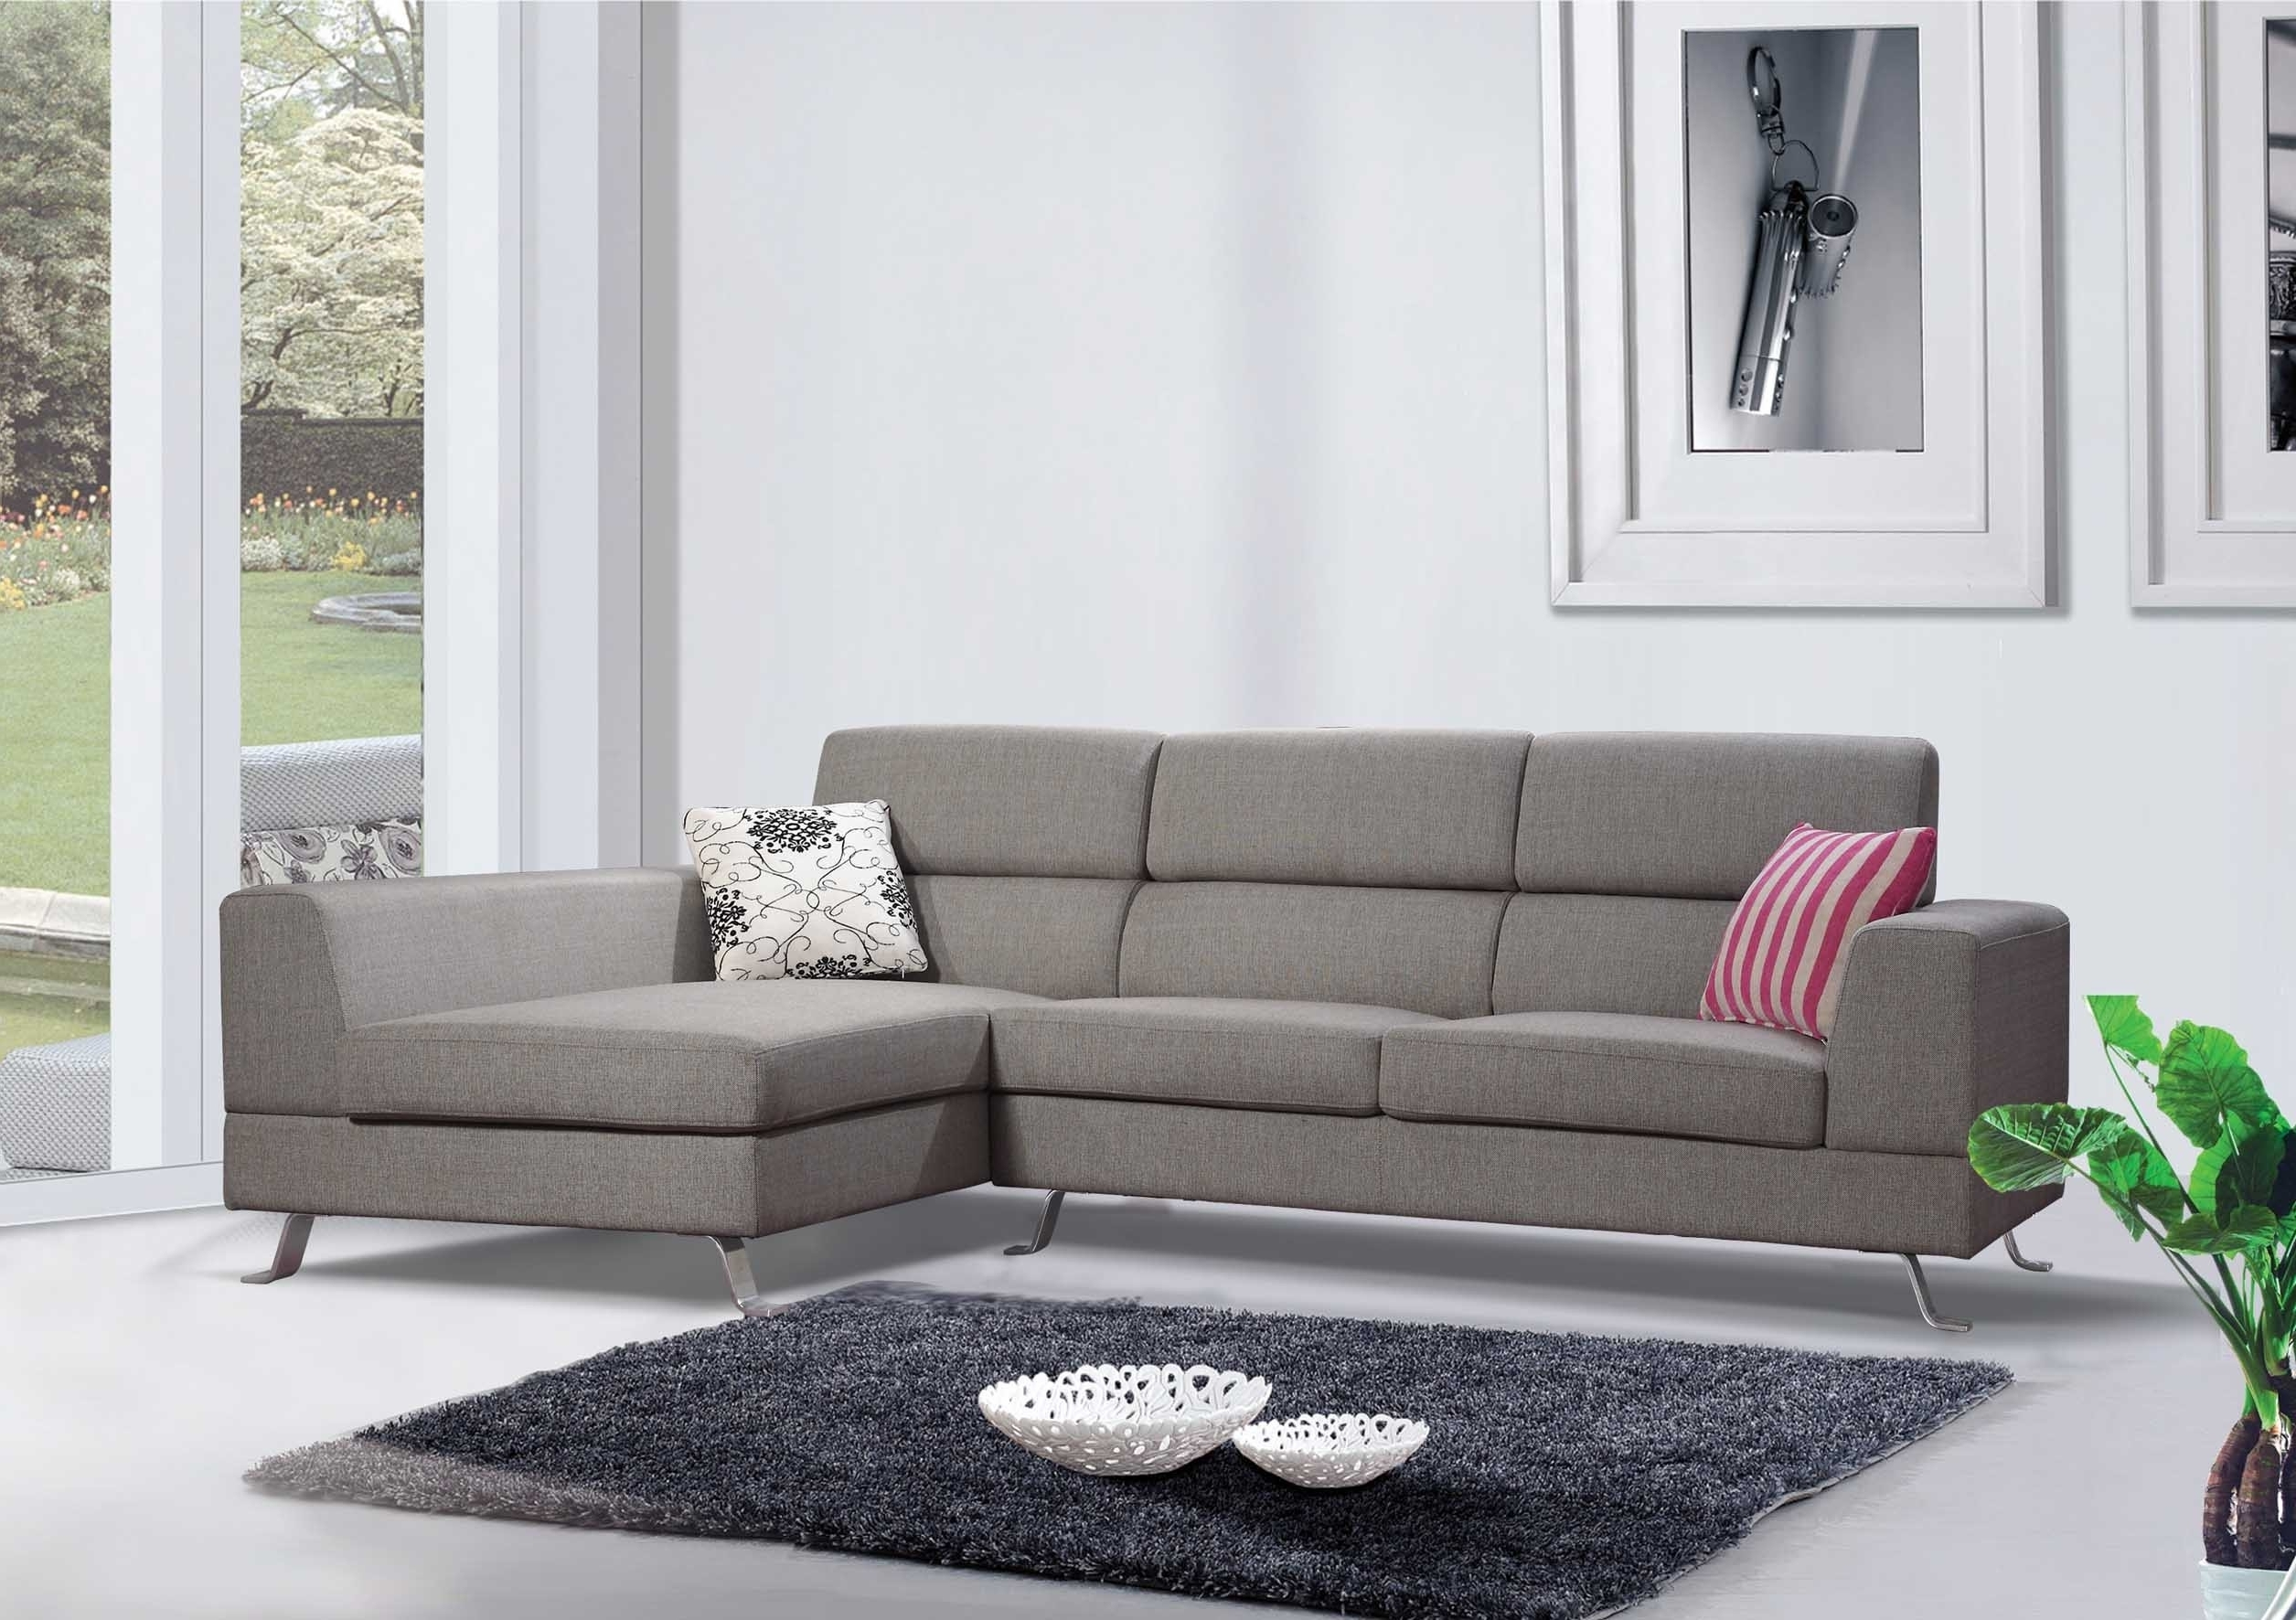 Furniture : Microfiber Costco Sectional Sofa Furnitures With Regard To Popular 100x100 Sectional Sofas (View 3 of 20)